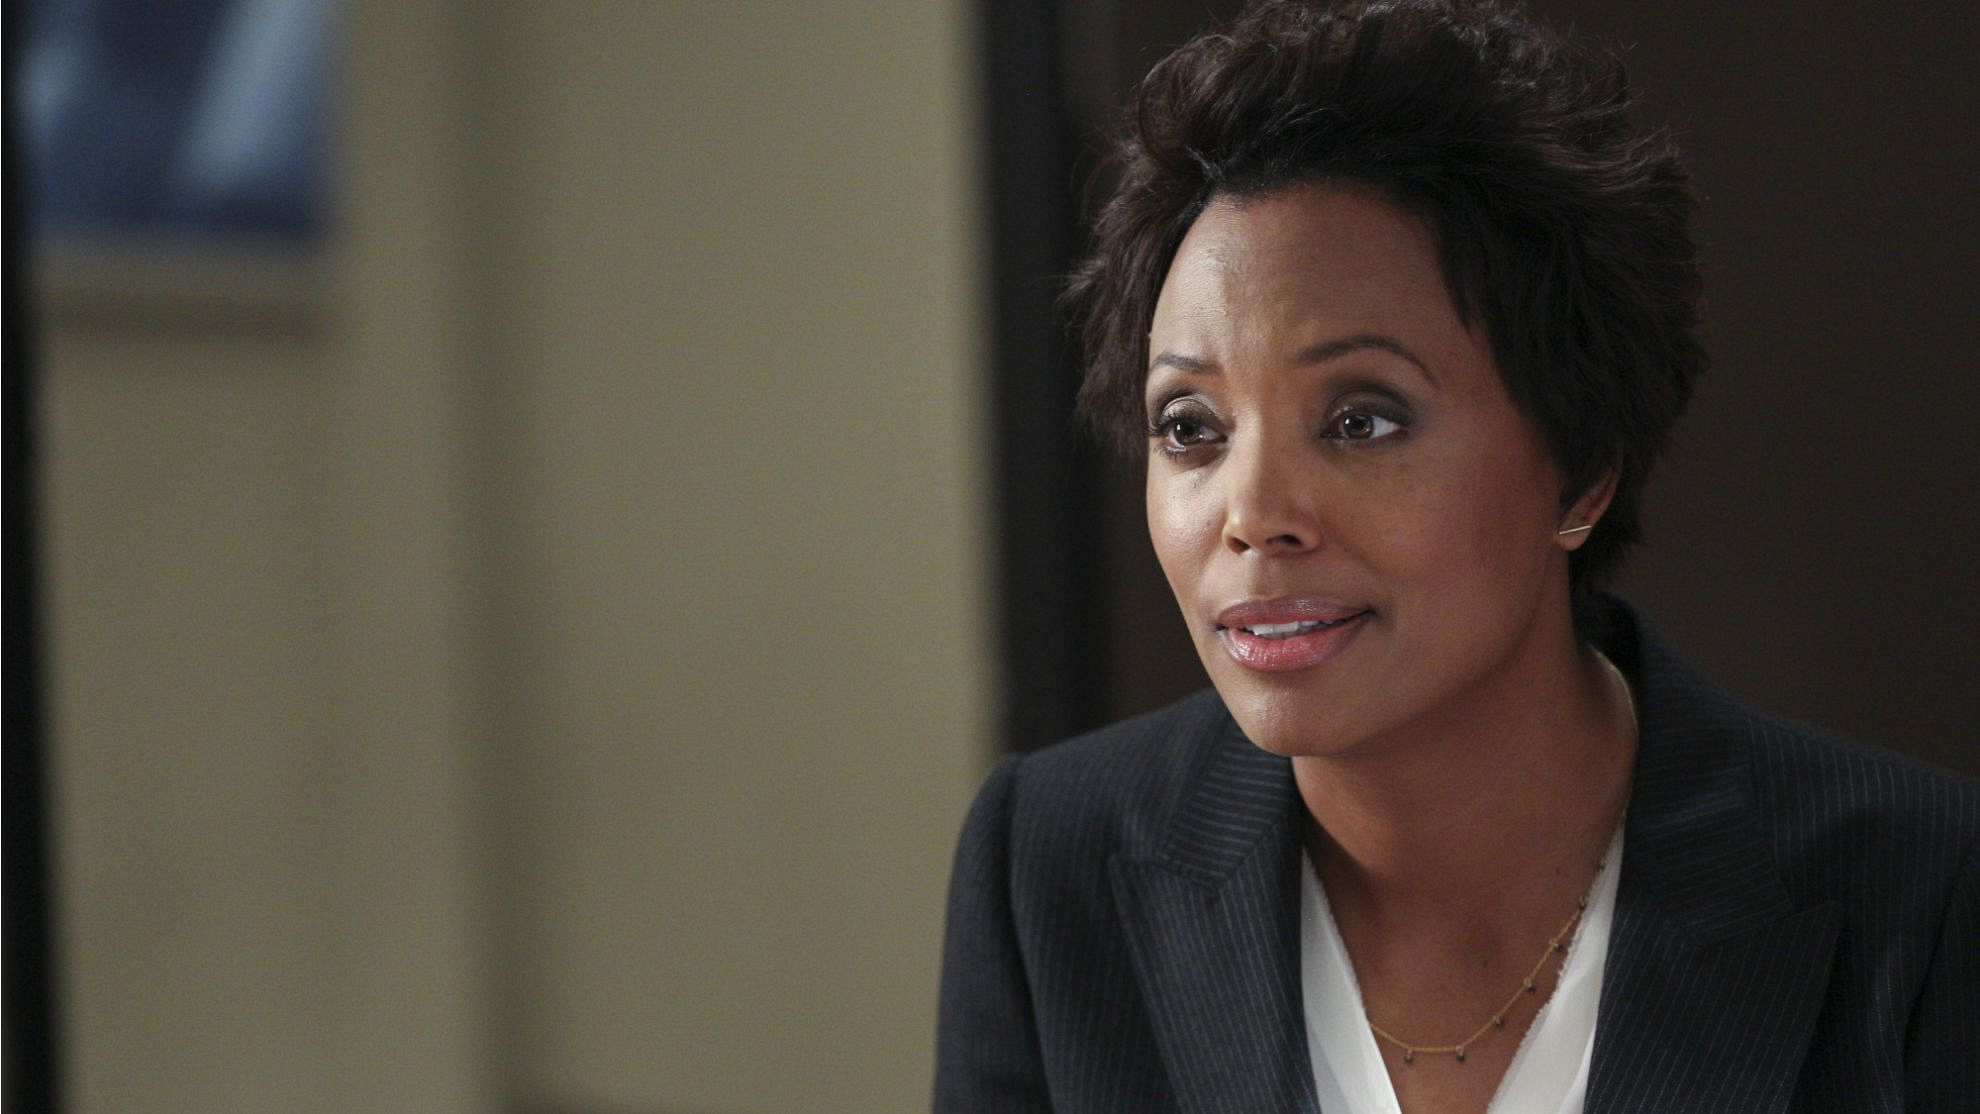 Dr. Tara Lewis on Criminal Minds